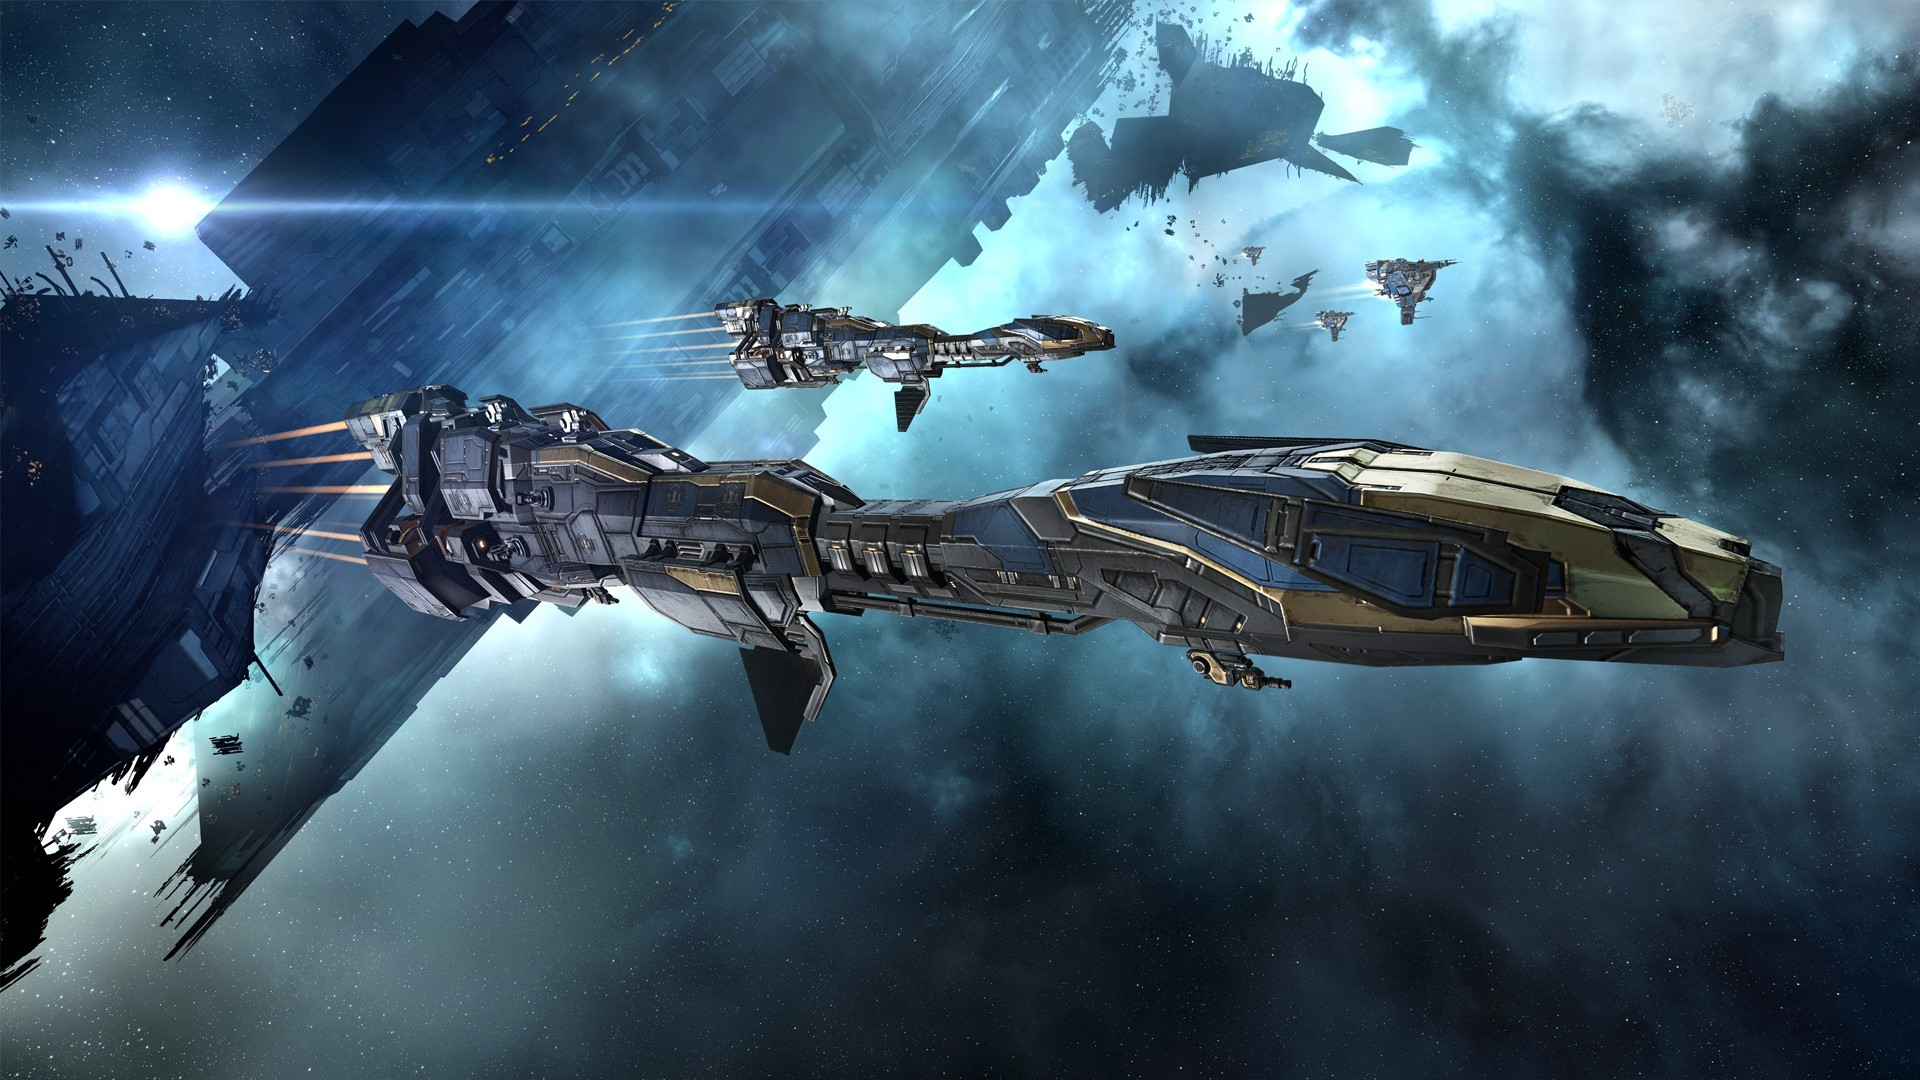 General EVE Online Minmatar video games spaceship concept art  science fiction space Stabber Cruiser